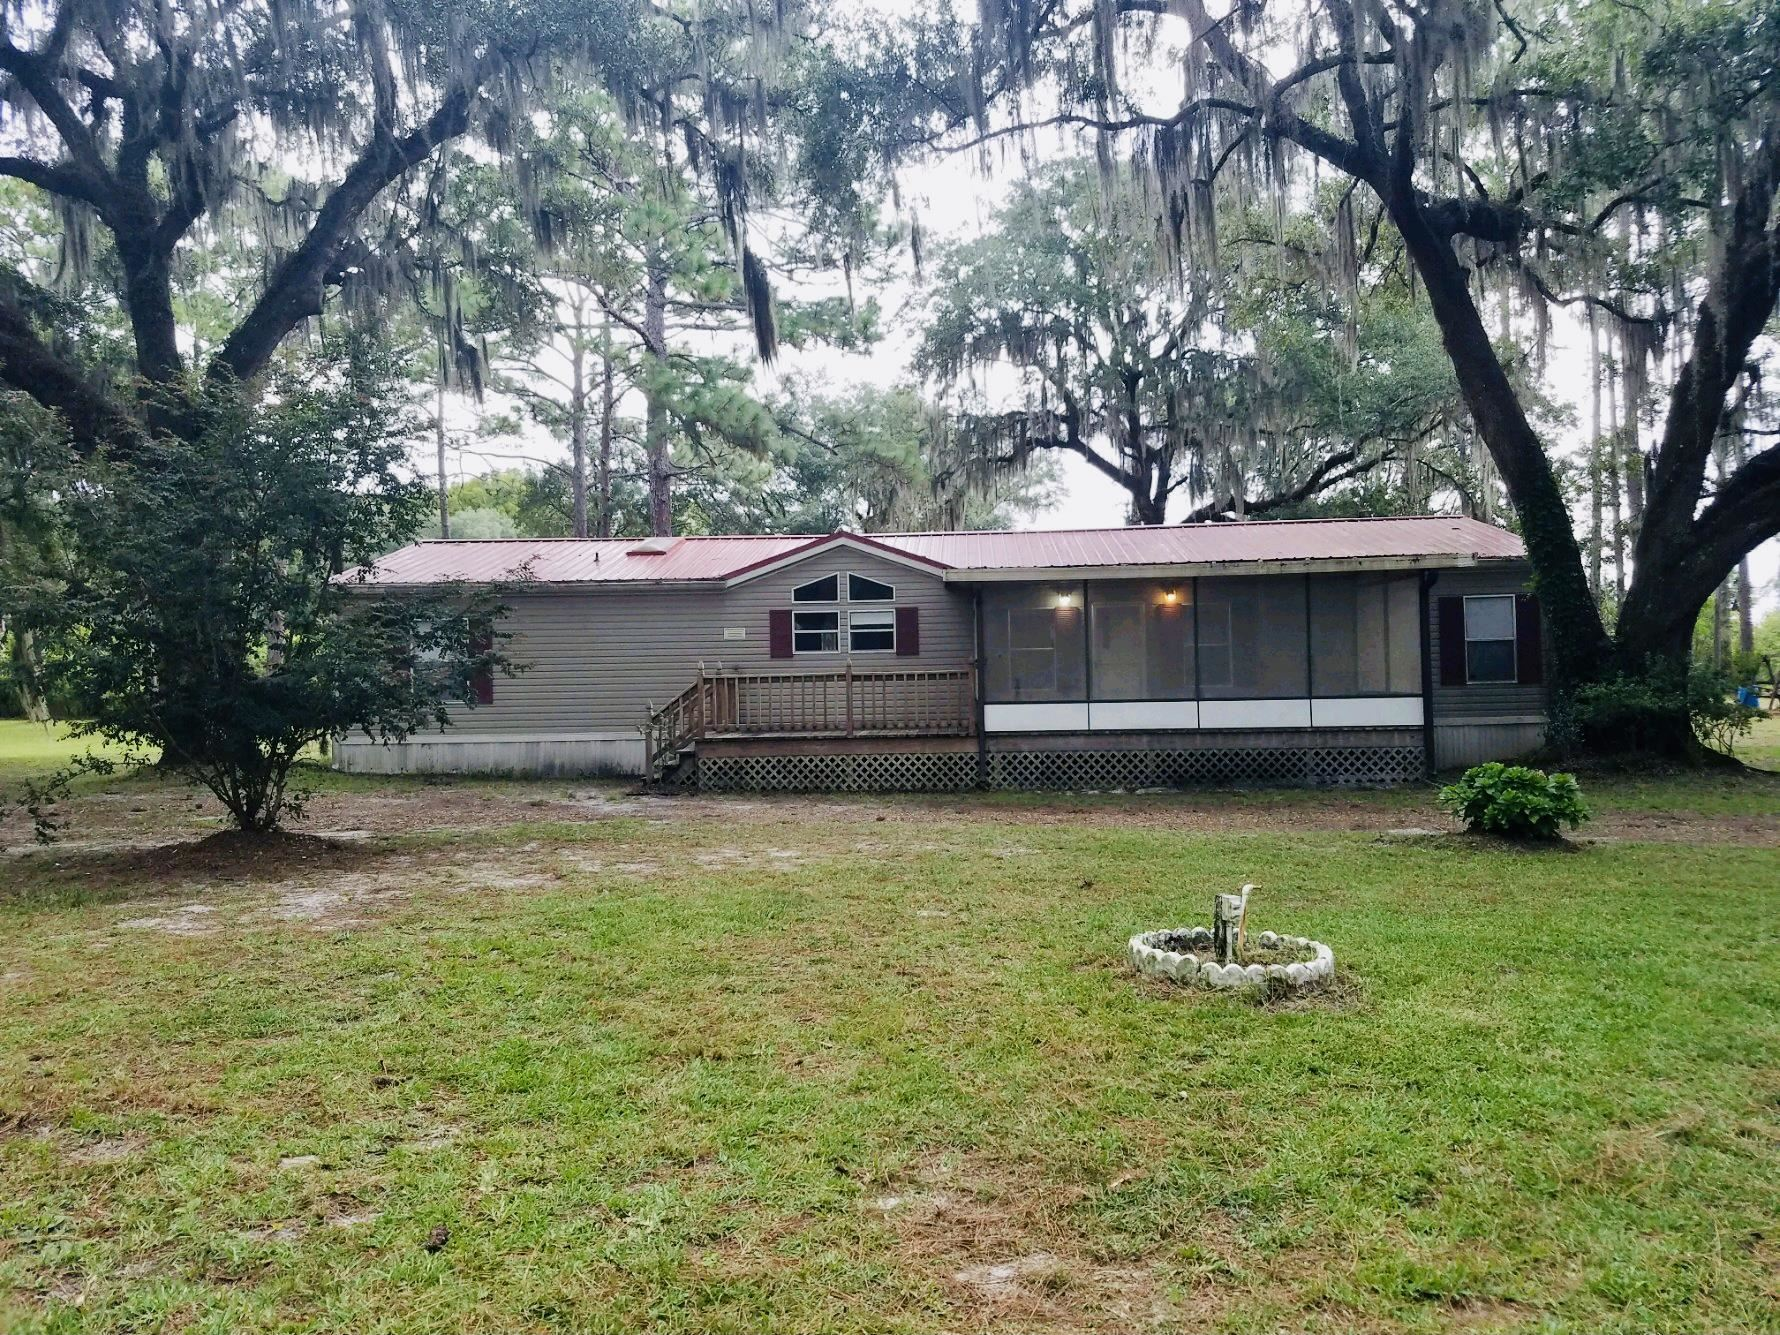 Nestled in beautiful live oaks and pines in Taylor County, this 3 bedroom, 2 bathroom, doublewide mobile home sits on a spacious 1.19 acres. This home has a long lasting metal roof put on by previous owner. New AC in 2019. Mature Loquat, Kumquat, plum and fig trees. The primary room has a grand garden tub and shower. The open concept kitchen allows for entertainment while enjoying the dining area and living room. The warm wood burning fireplace makes for a cozy feeling in the winter months. The large screened in porch is the perfect space to sit back and relax and enjoy the great outdoors. You also have an open deck area for entertaining family & friends. The large workshop has electric and plumbing and is perfect place to work on those much needed projects. The house is on city water. Behind the workshop is a chicken coop or firewood storage area. This property is a quick drive to Winn Dixie and easy access to town. This is a must see property. Seller is motivated and ready to sell.